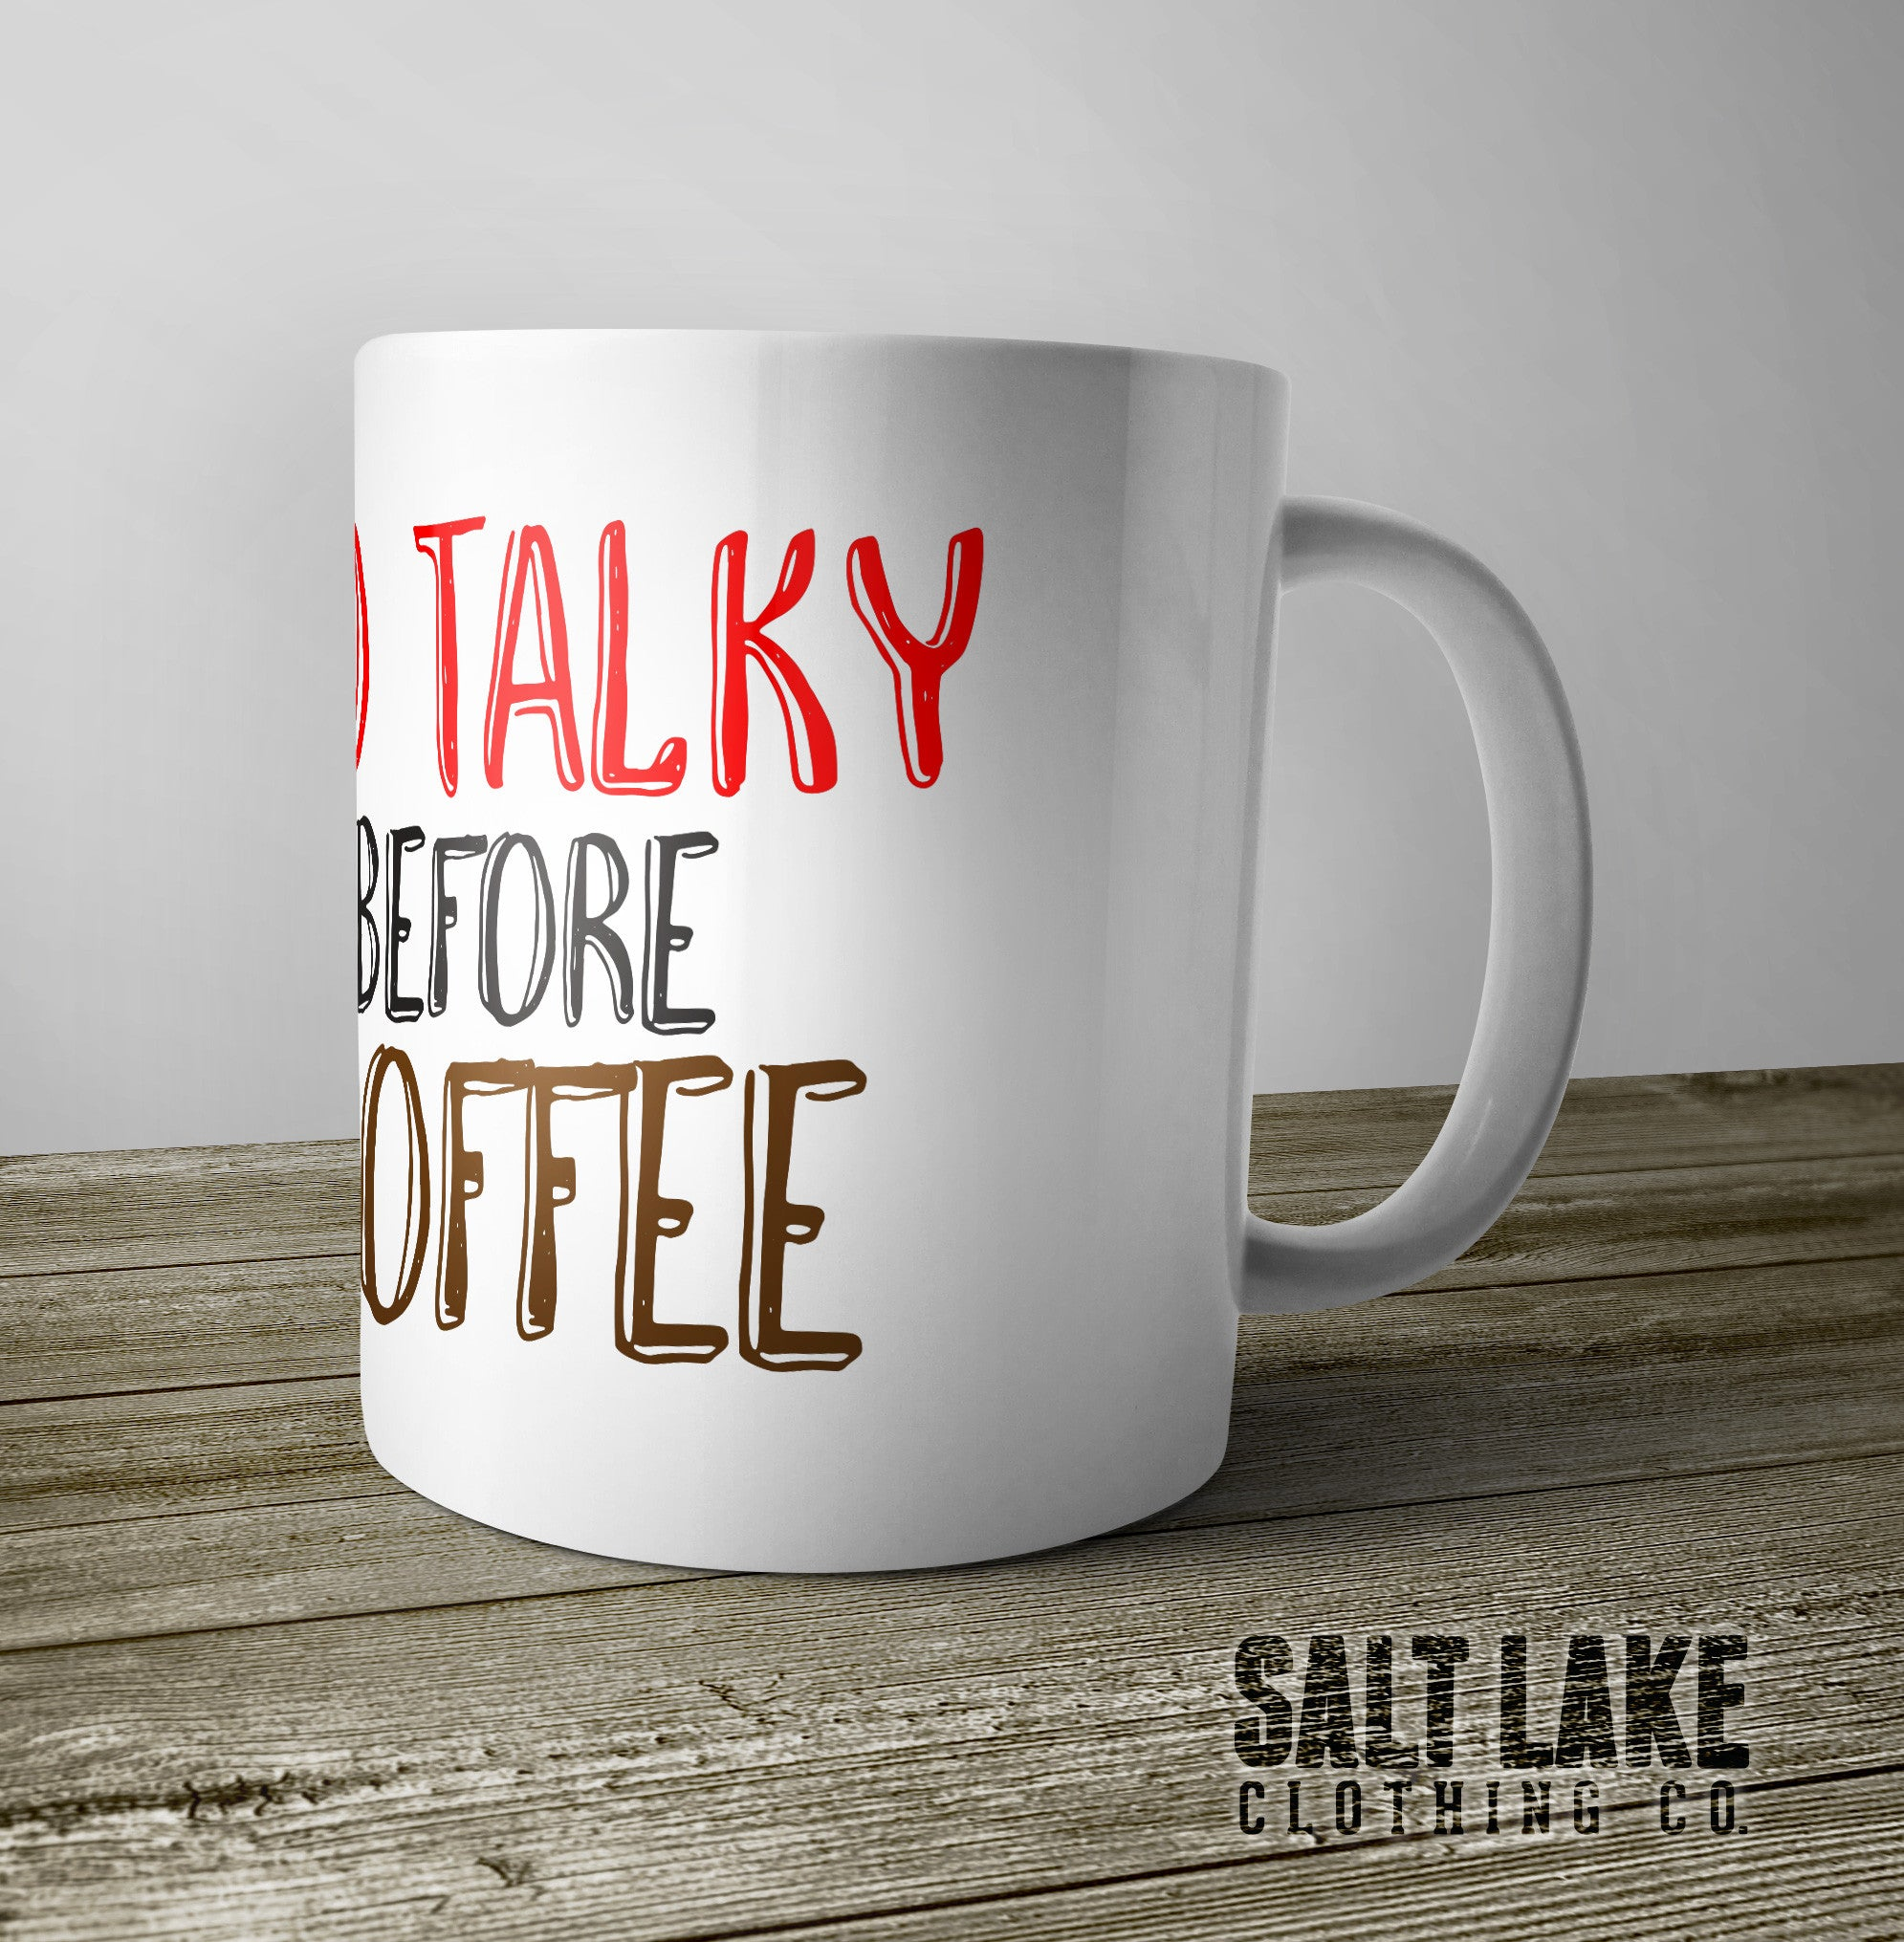 No Talky Before Coffee Ceramic 11 0z. Coffee Mug